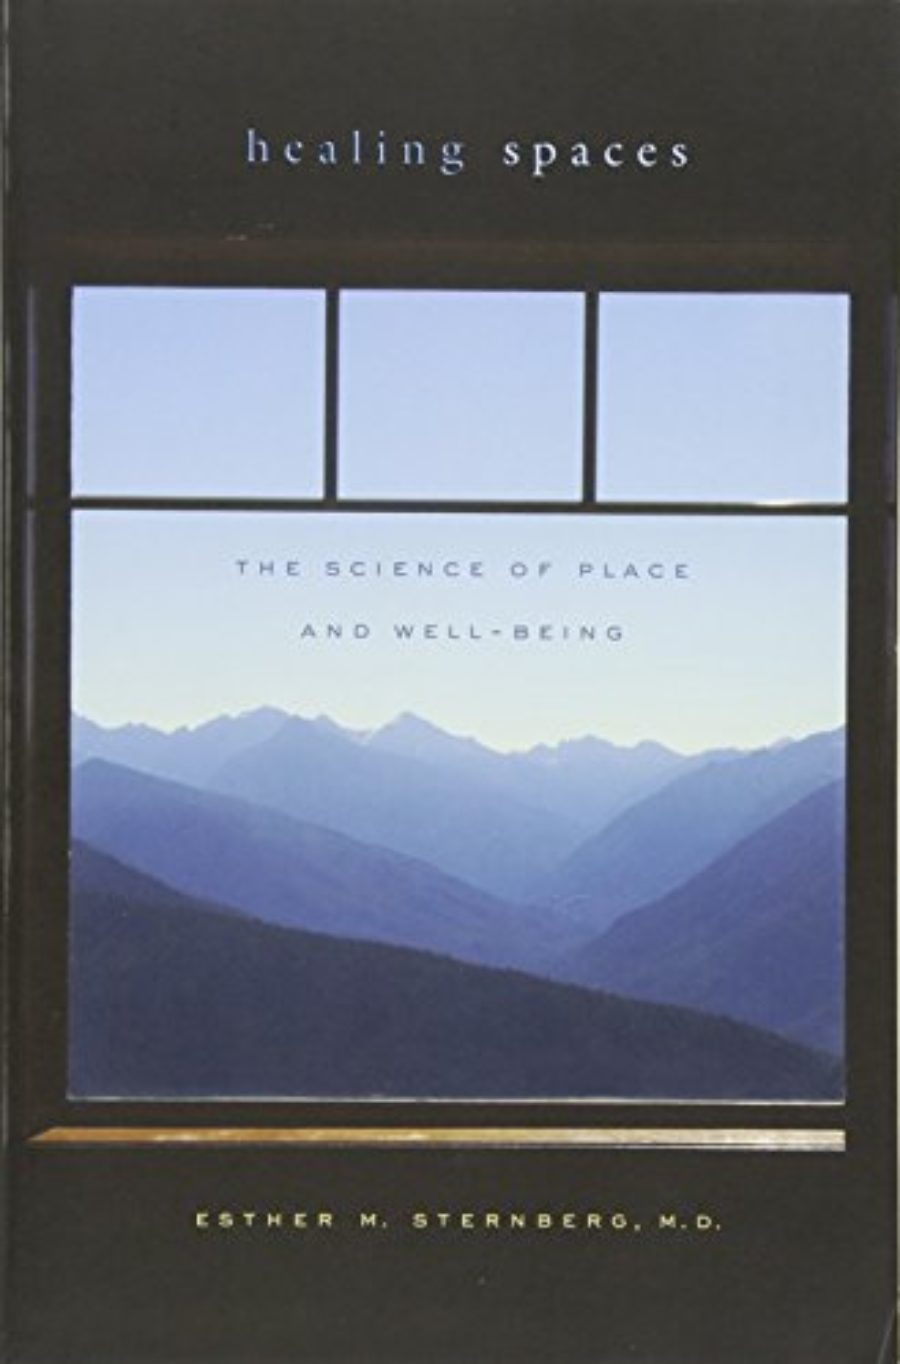 Cover of Healing Spaces: The Science of Place and Well-Being